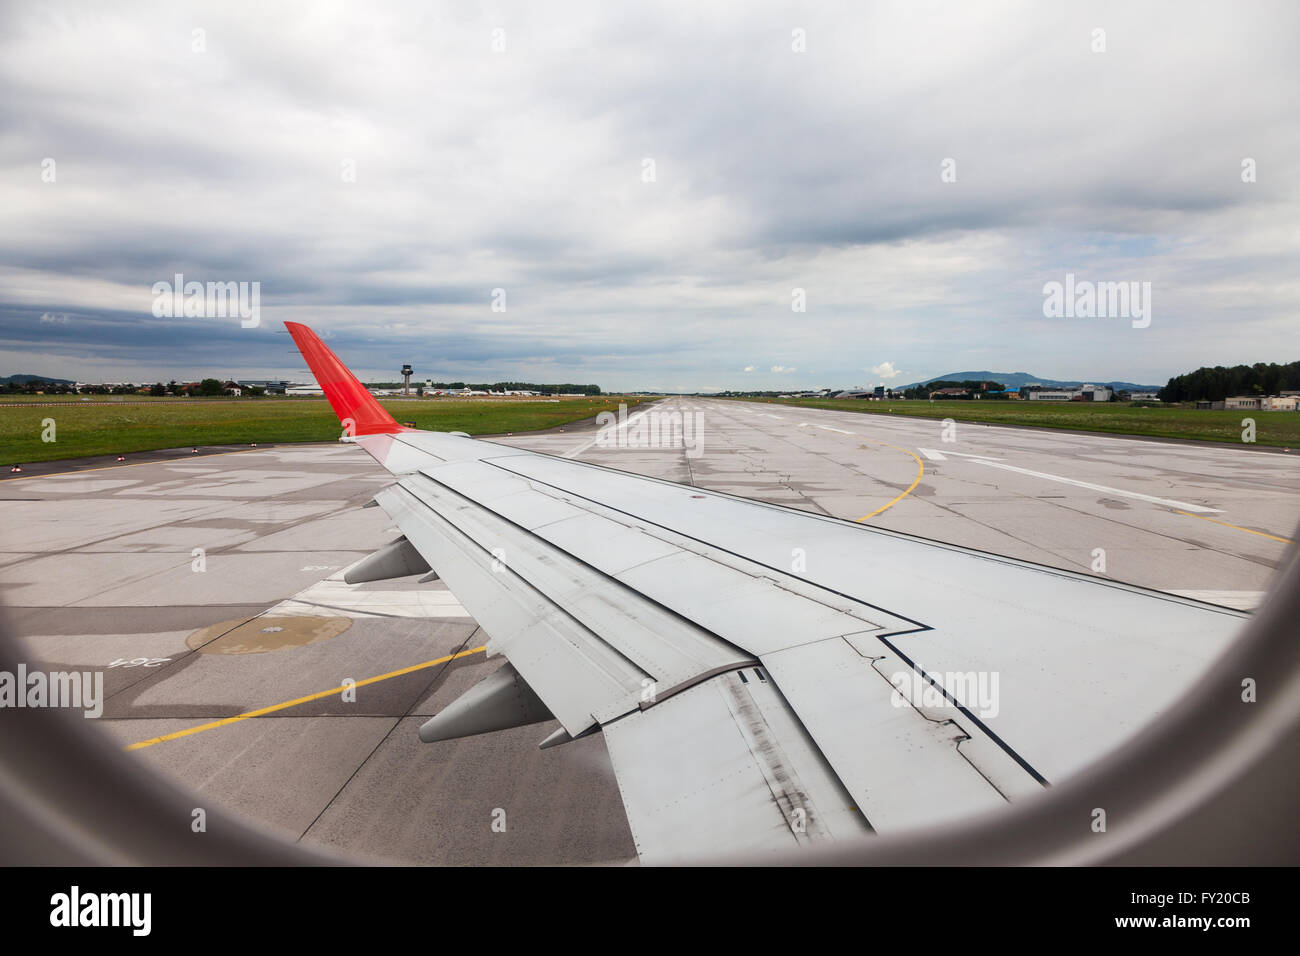 Looking through an airplane window at the runway taxiing on takeoff at Saltzburg airport Saltzburg Austria Europe - Stock Image